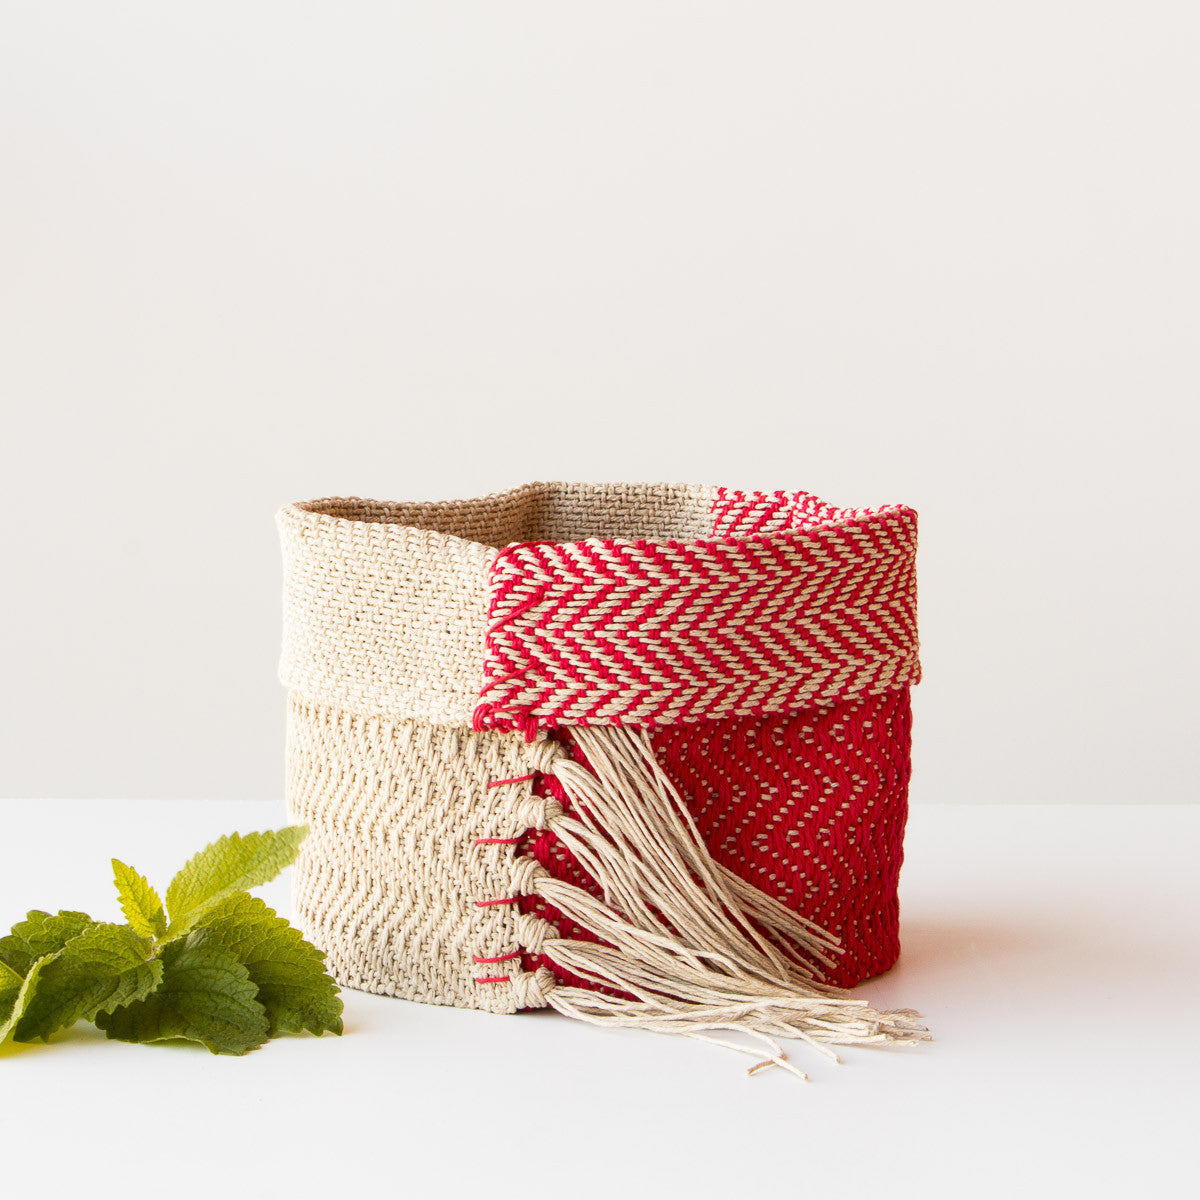 Hemp Table Basket - Handwoven in Montreal, Quebec, Canada - Chic & Basta